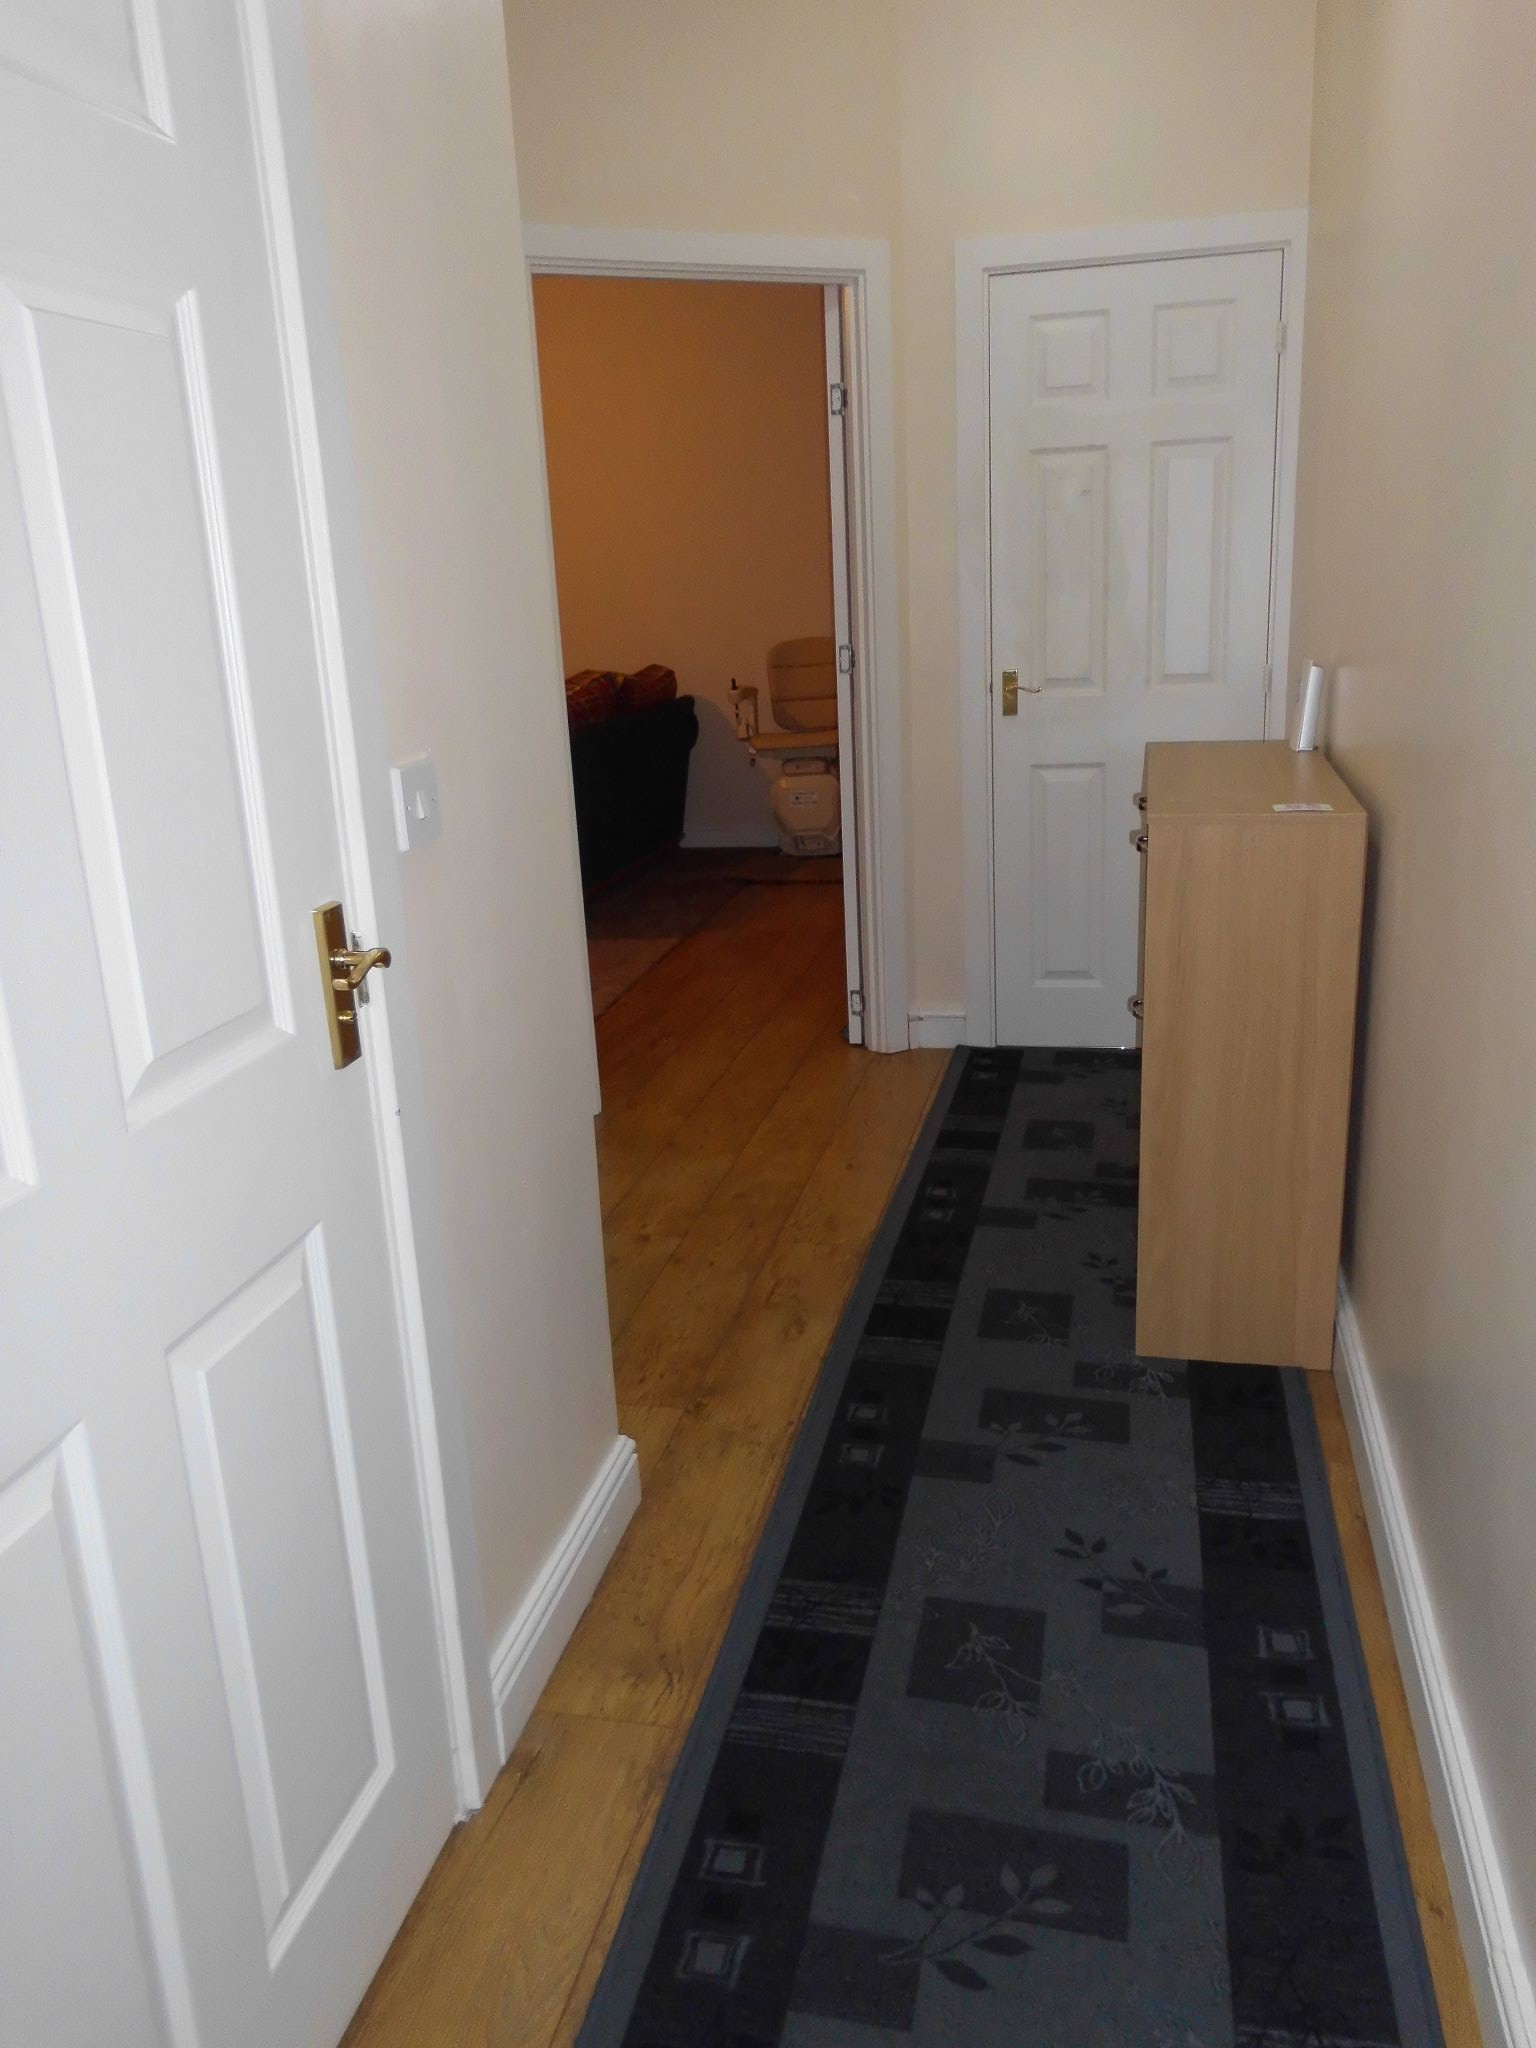 2 bedroom town house For Sale in Leicester - Photograph 2.